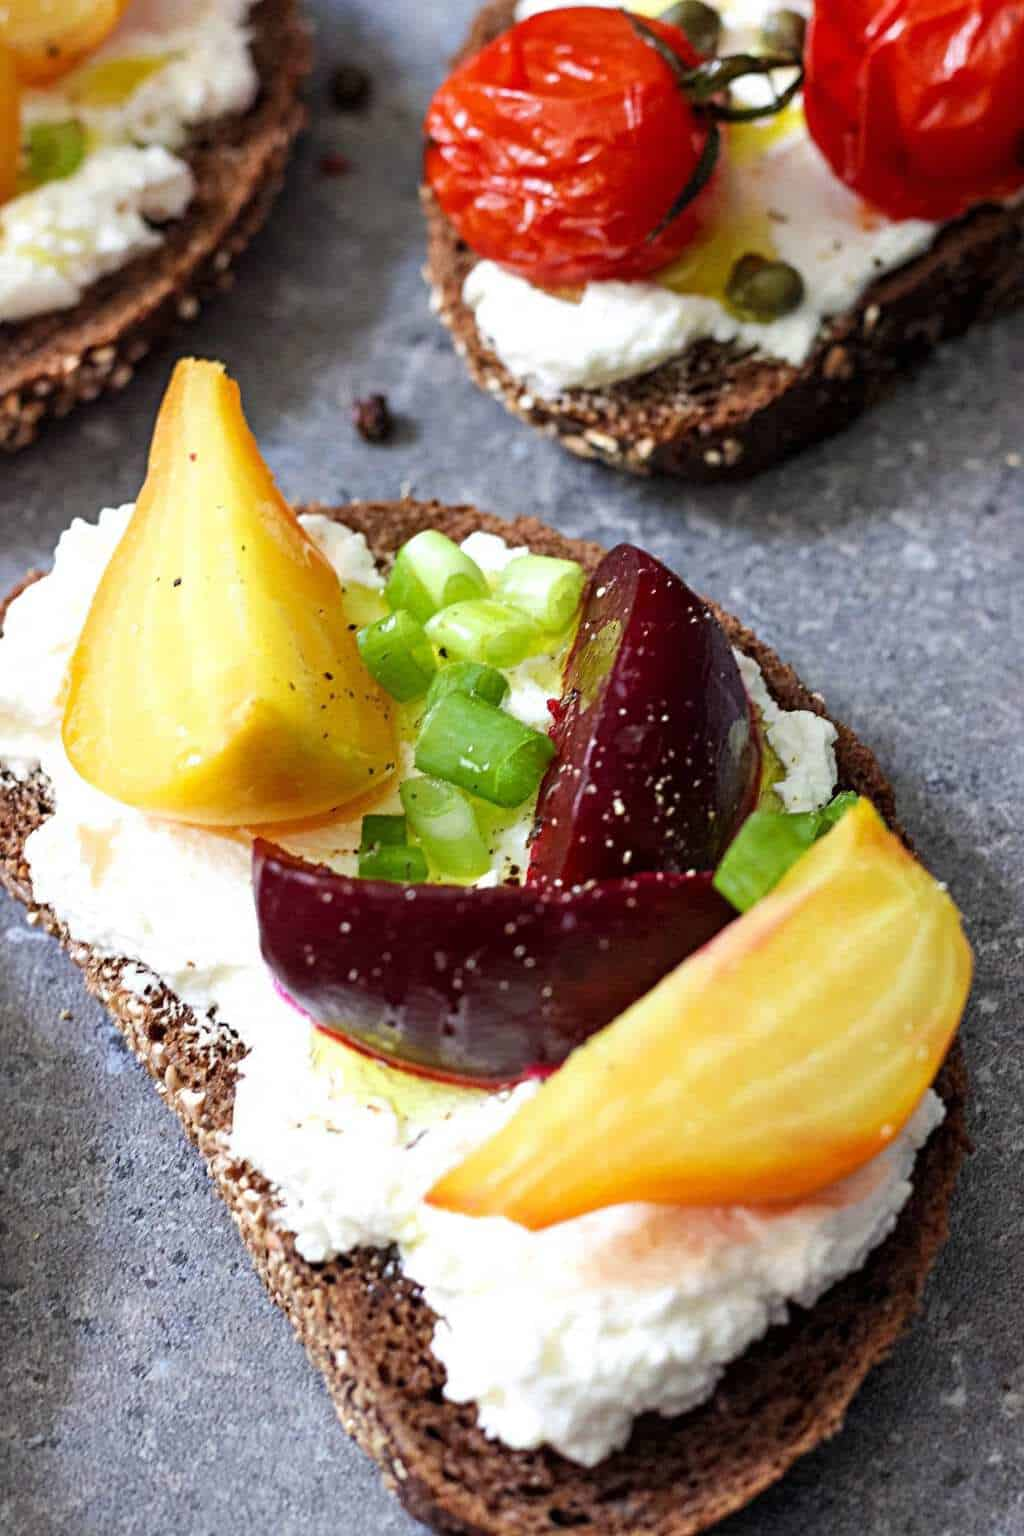 open-faced-sandwiches-with-beets